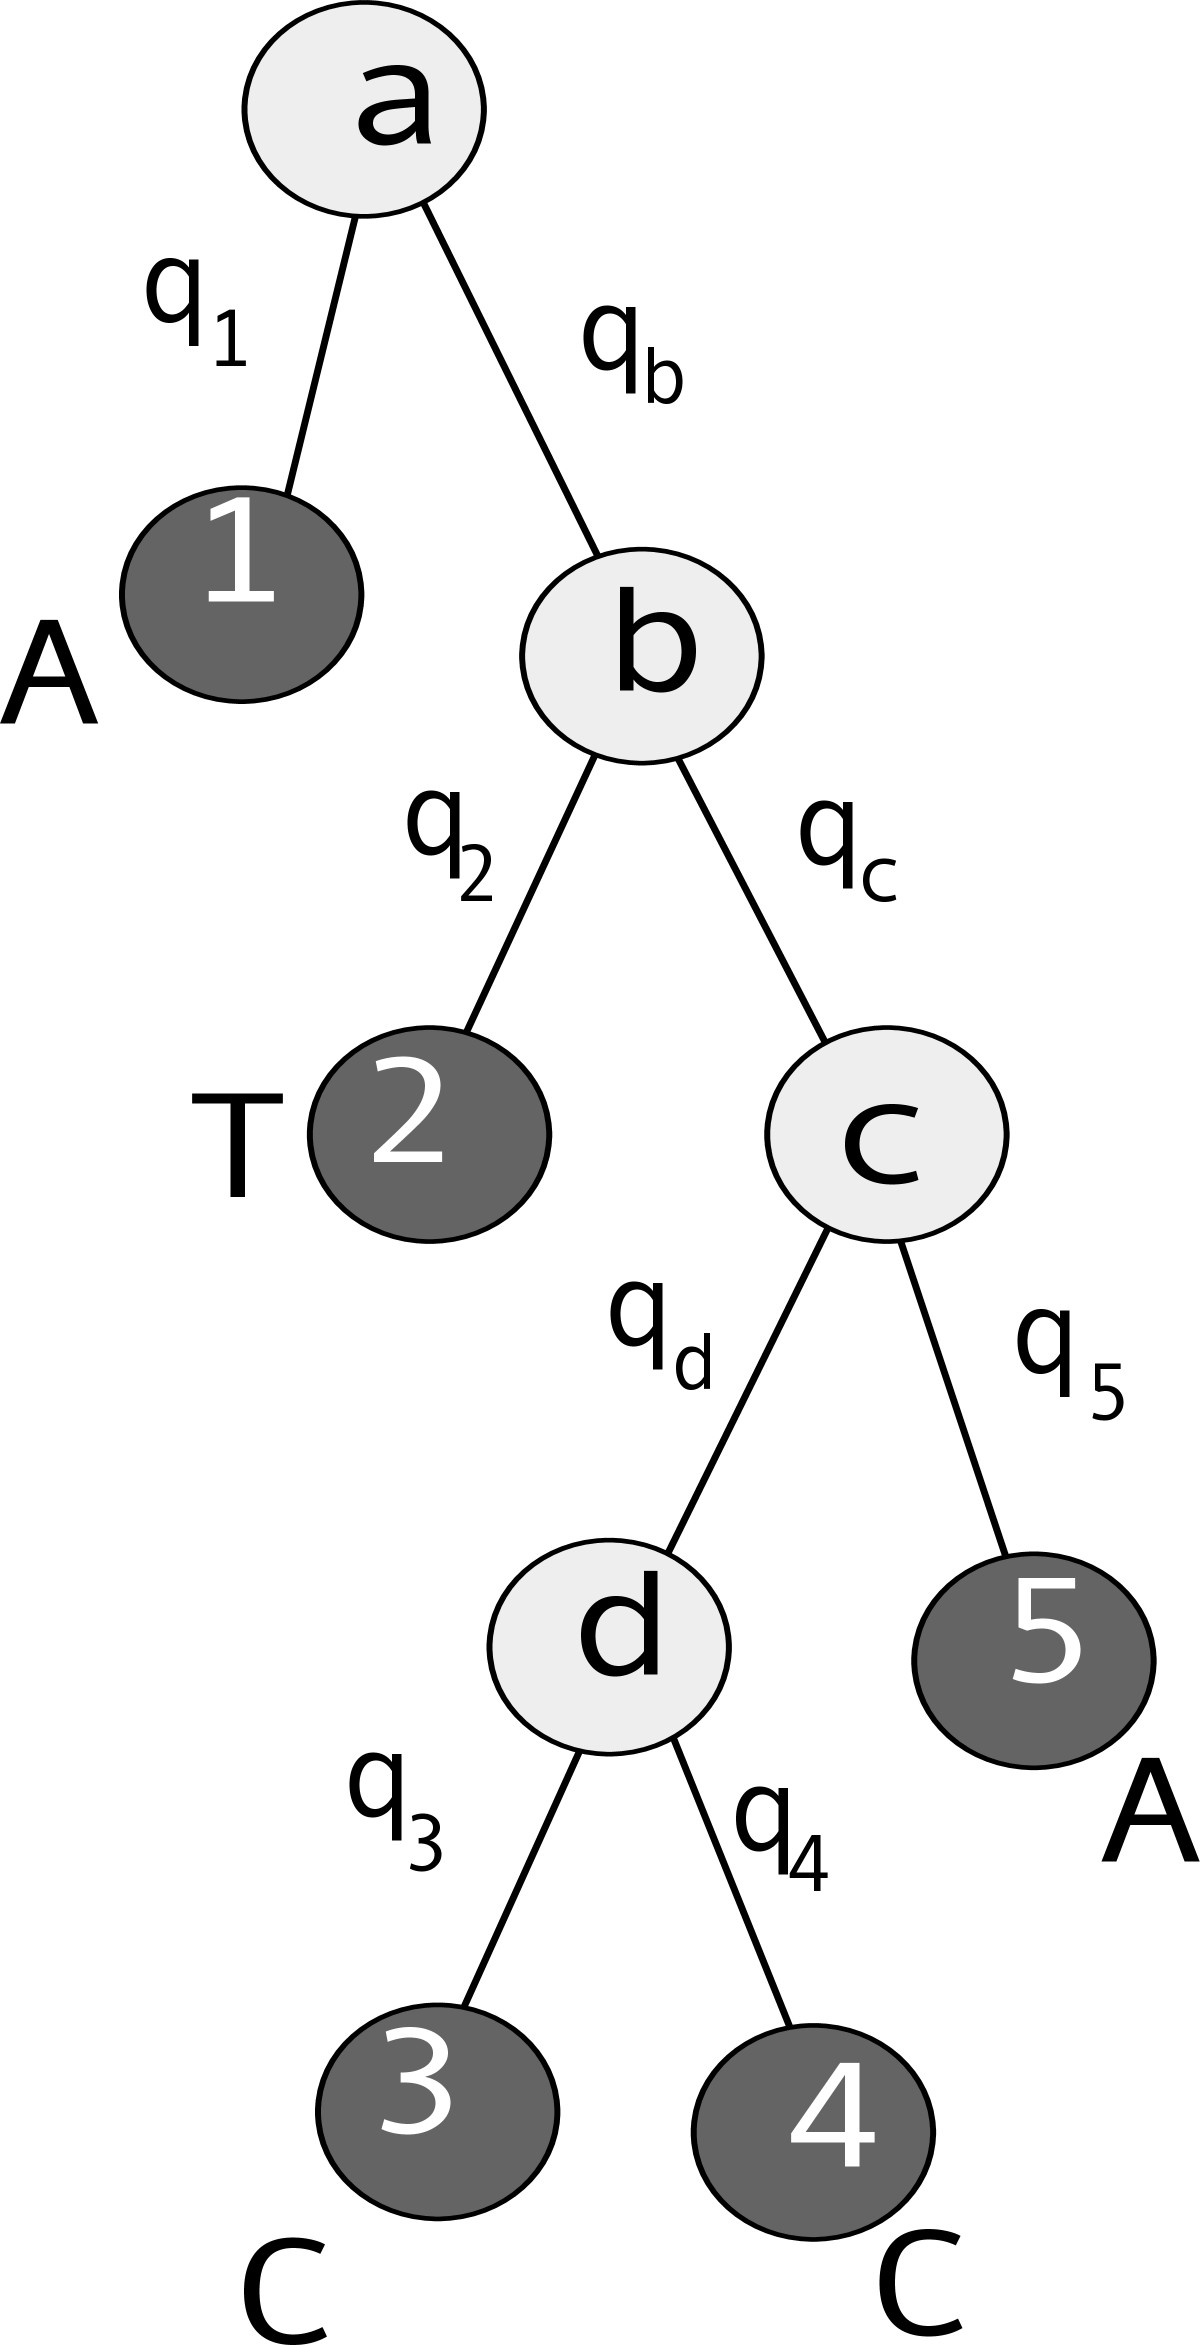 https://static-content.springer.com/image/art%3A10.1186%2F1471-2105-11-464/MediaObjects/12859_2010_Article_3921_Fig5_HTML.jpg